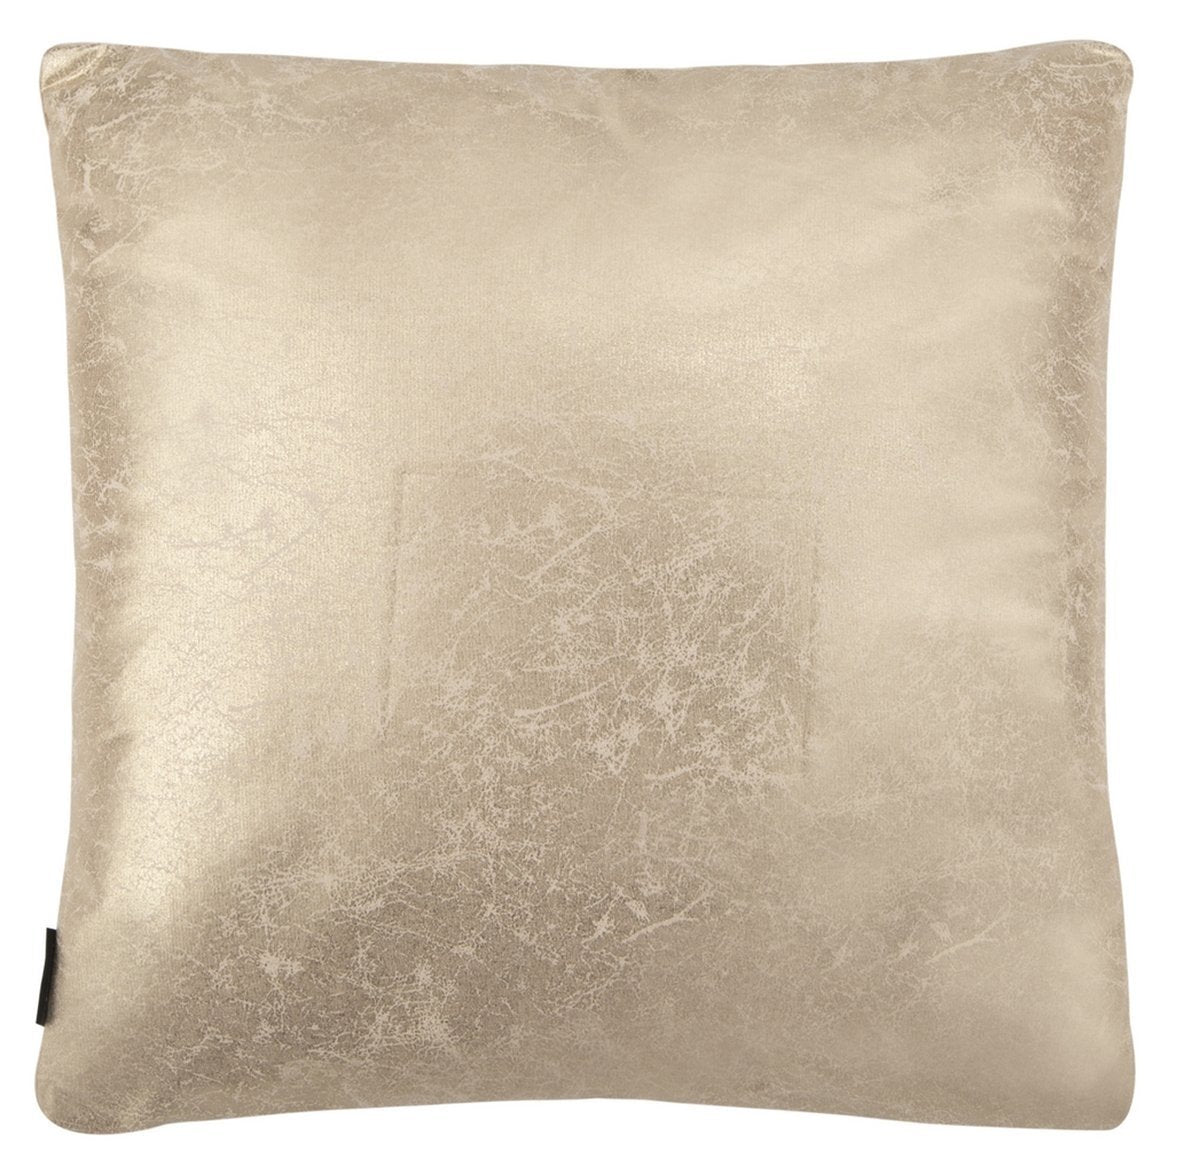 Pardia Pillow.